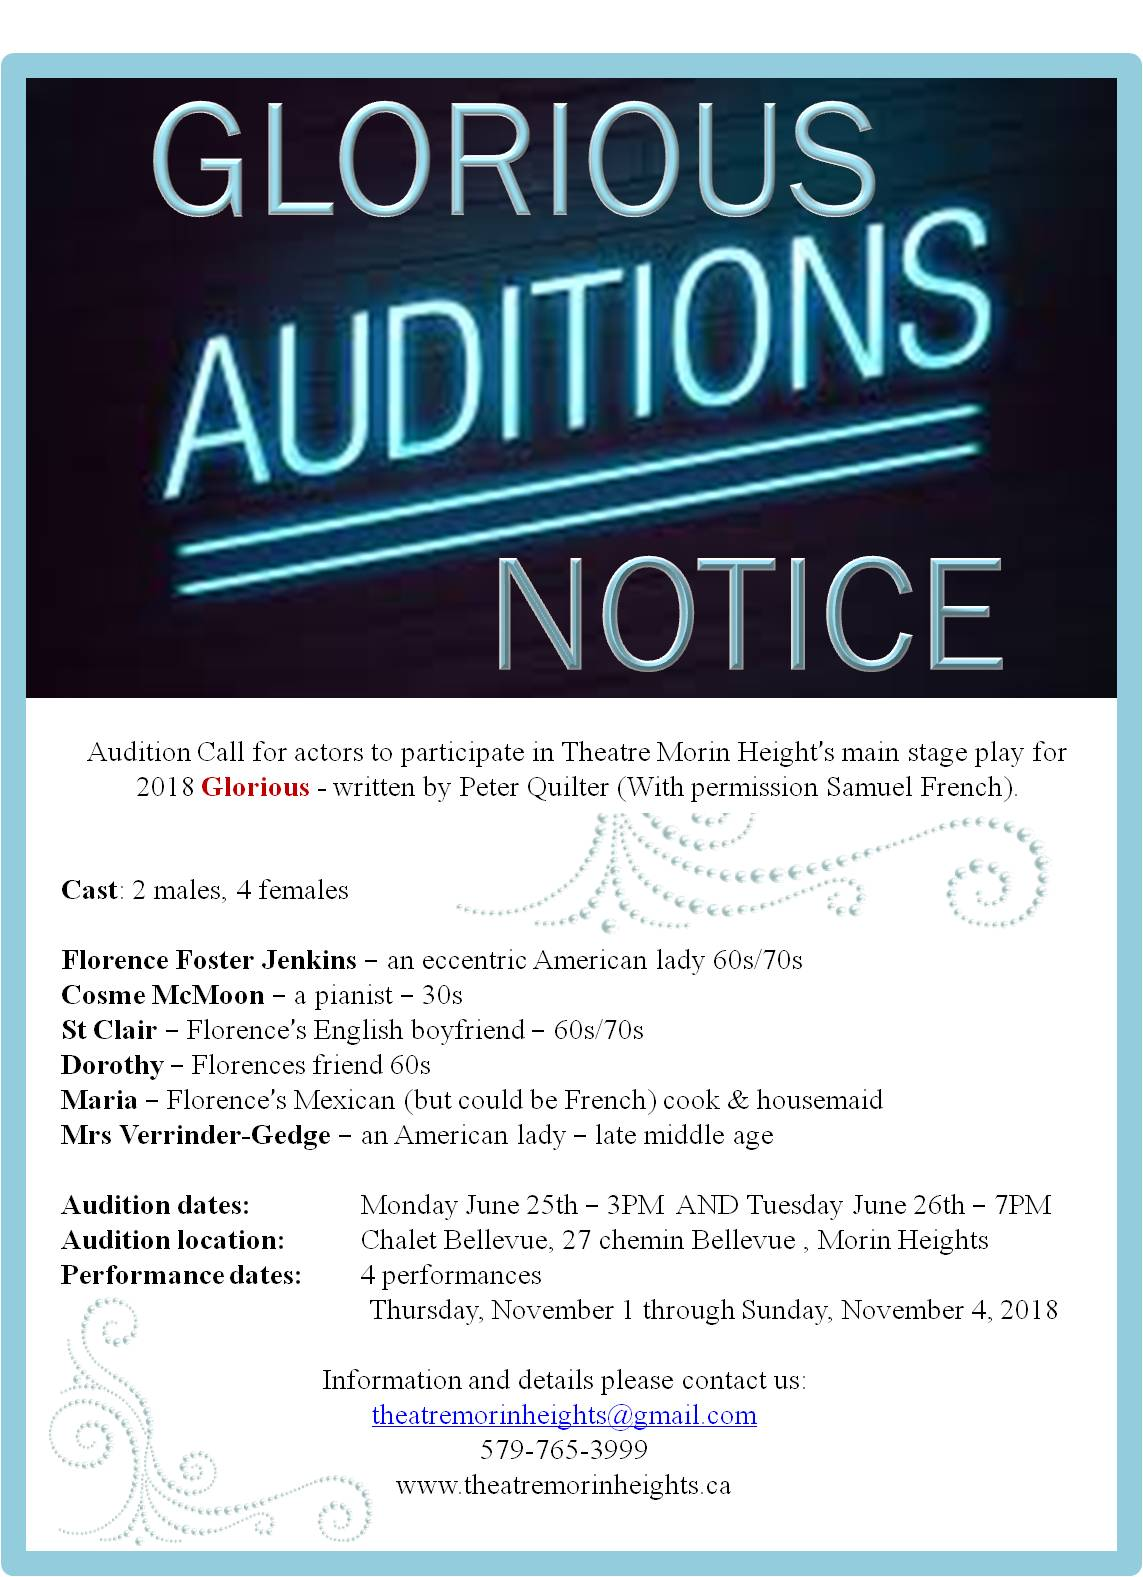 Audition Call for social media